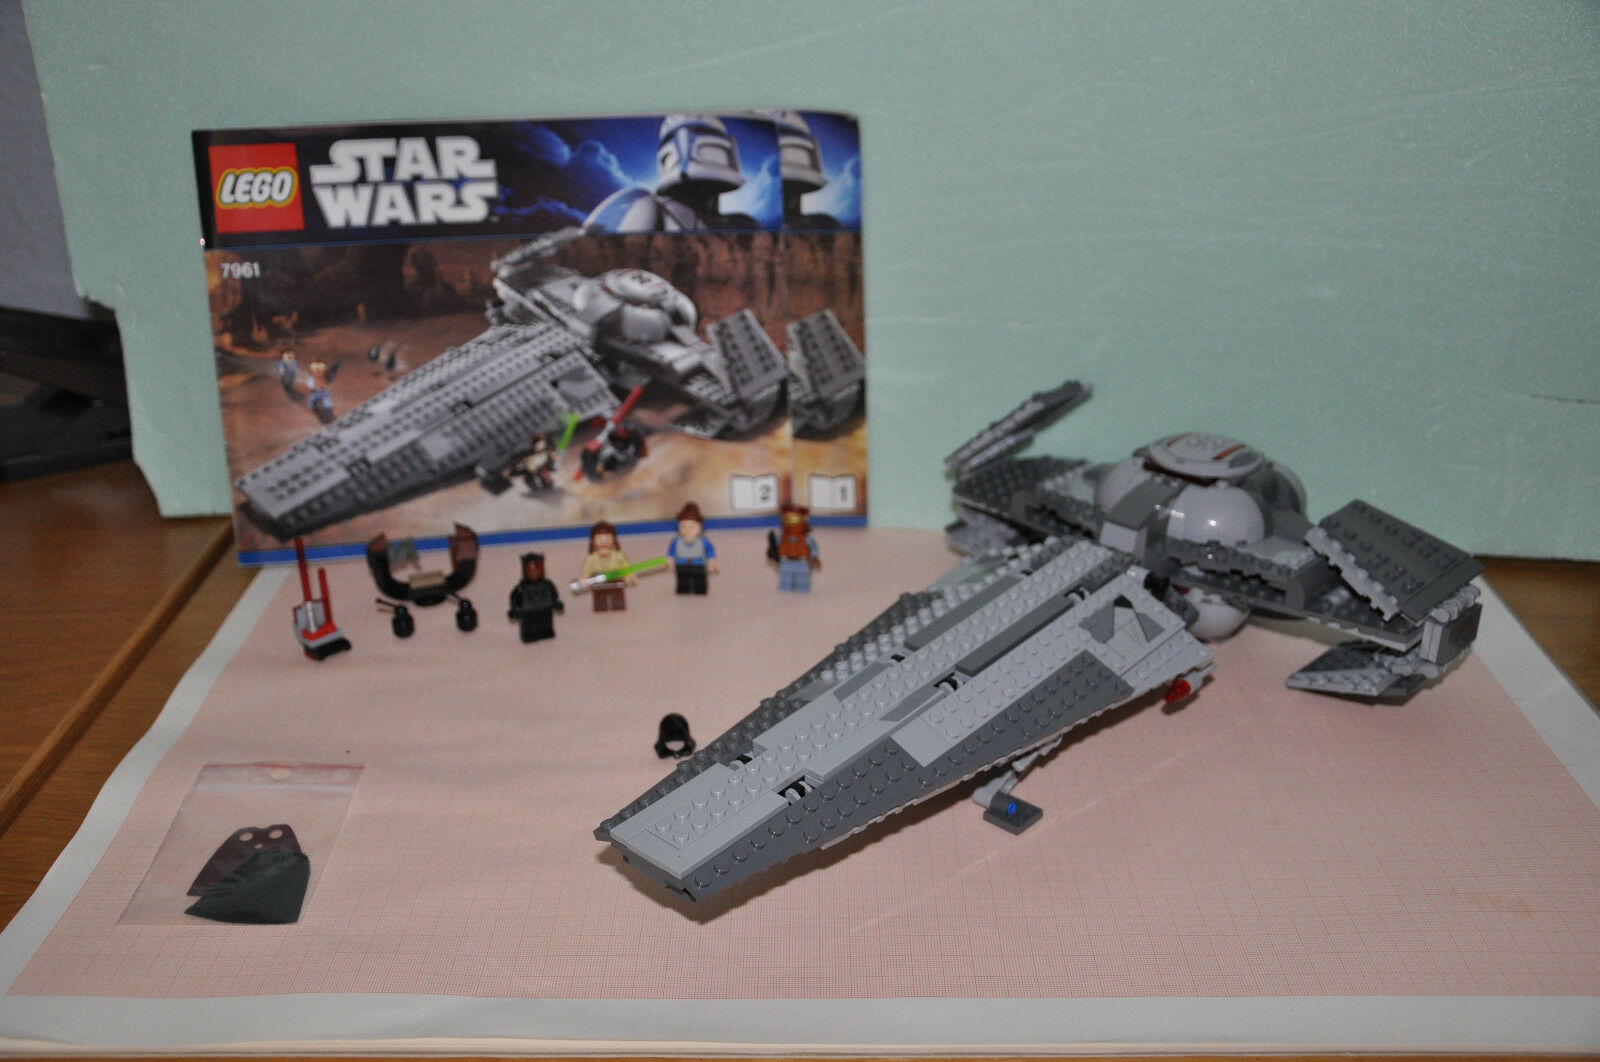 Lego Star Wars Set 7961 Darth Maul's Sith Infiltrator